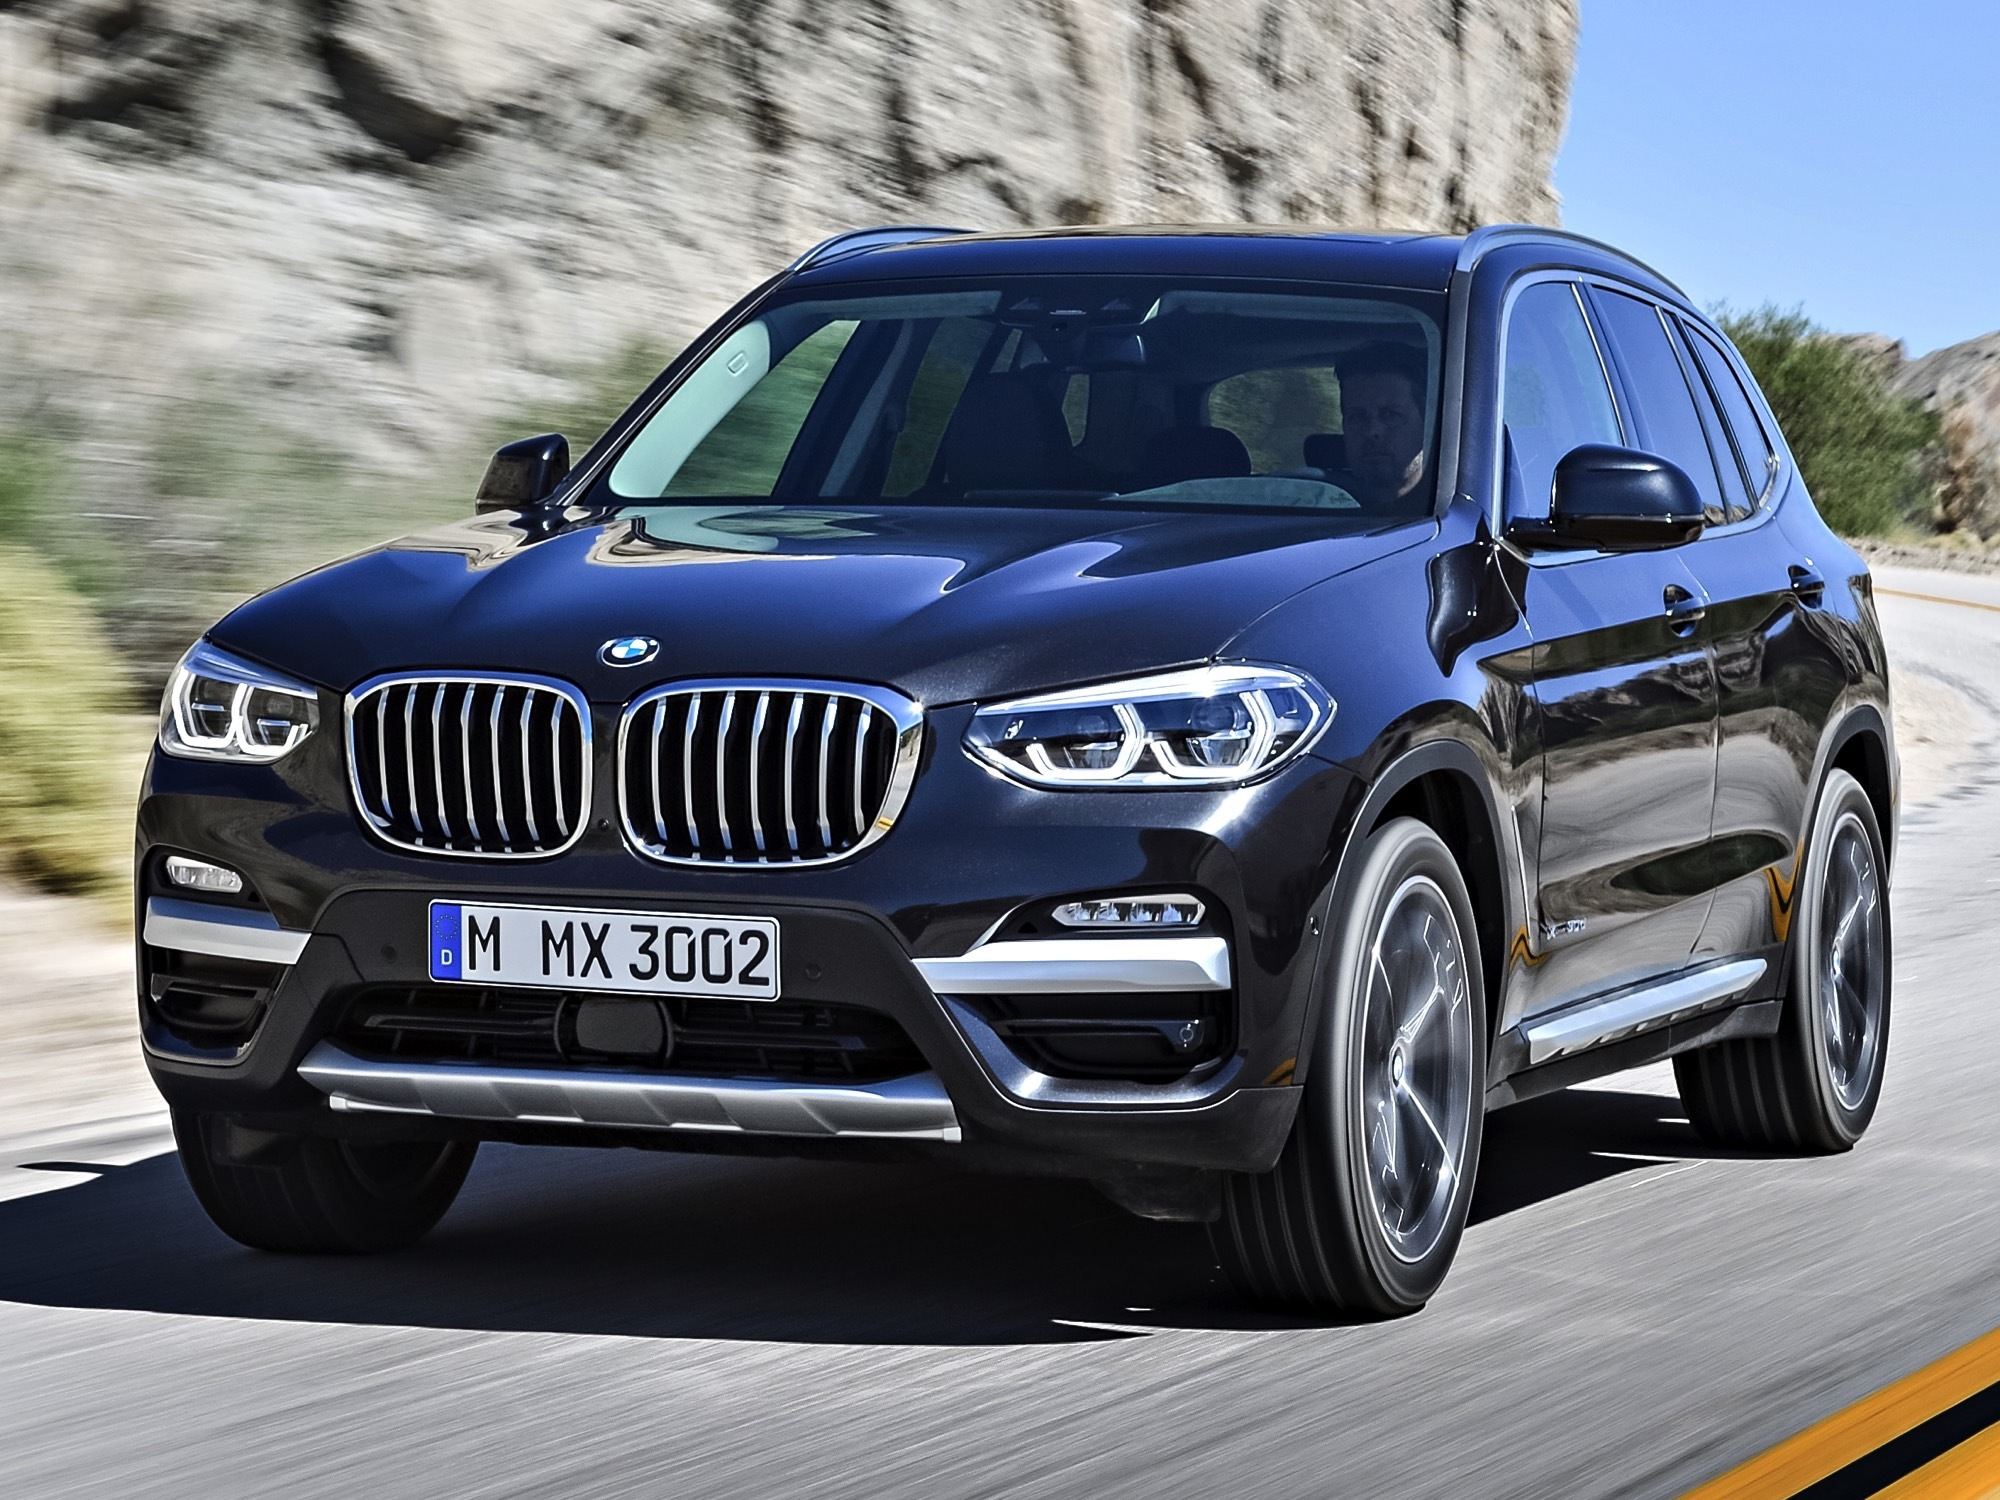 la nouvelle bmw x3 sport est sortie d 39 usine brusselsroads. Black Bedroom Furniture Sets. Home Design Ideas